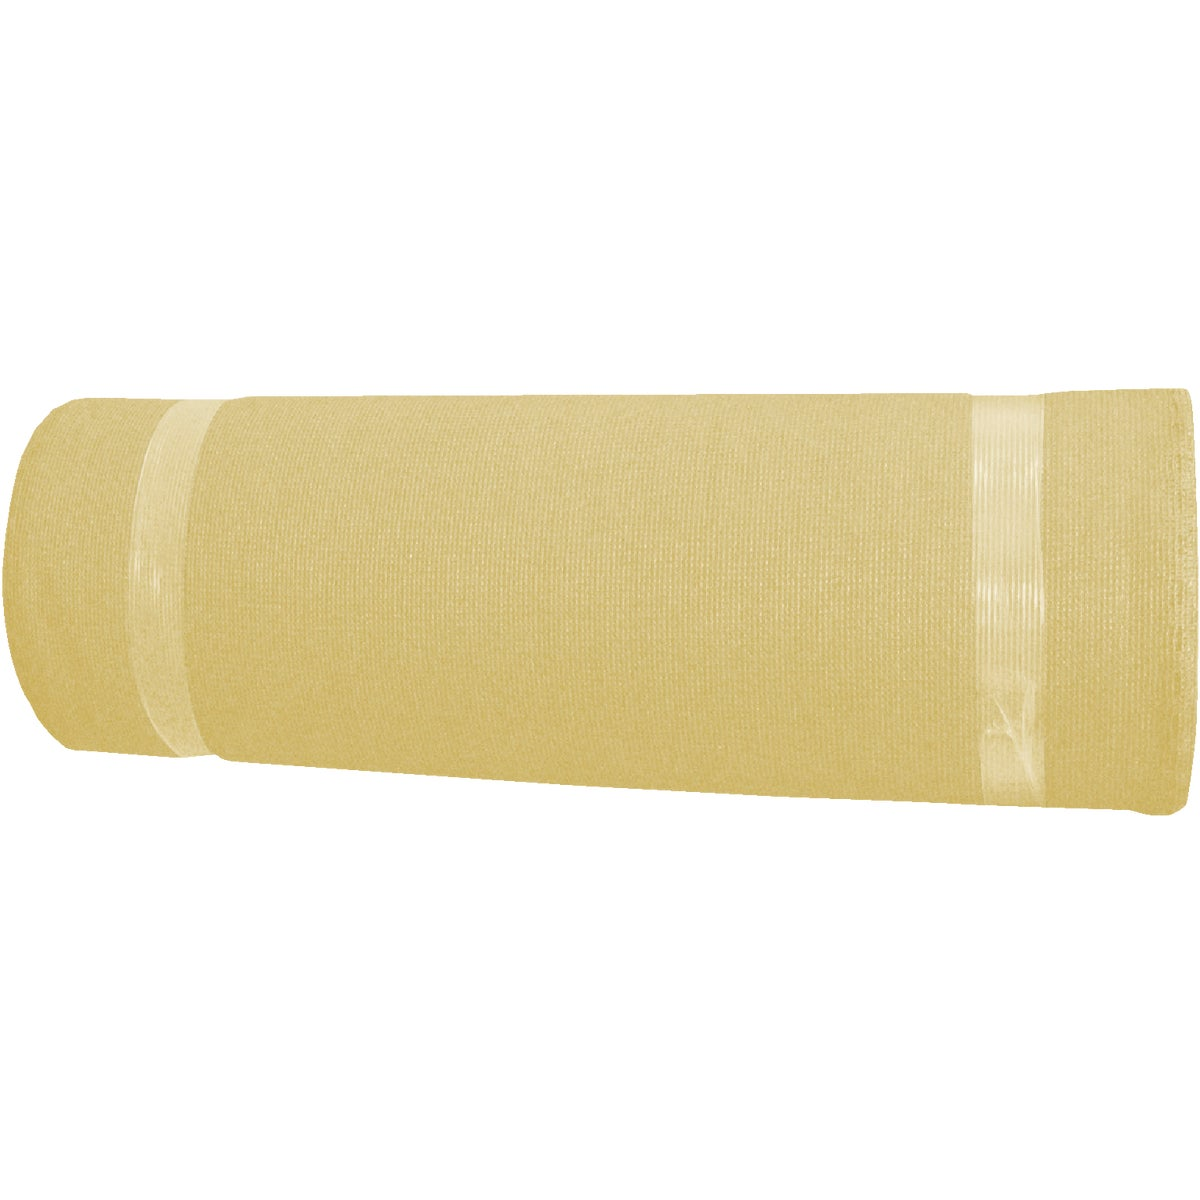 6X100 90% UV WHEAT SHADE - 300081 by Gale Pacific Coolaro